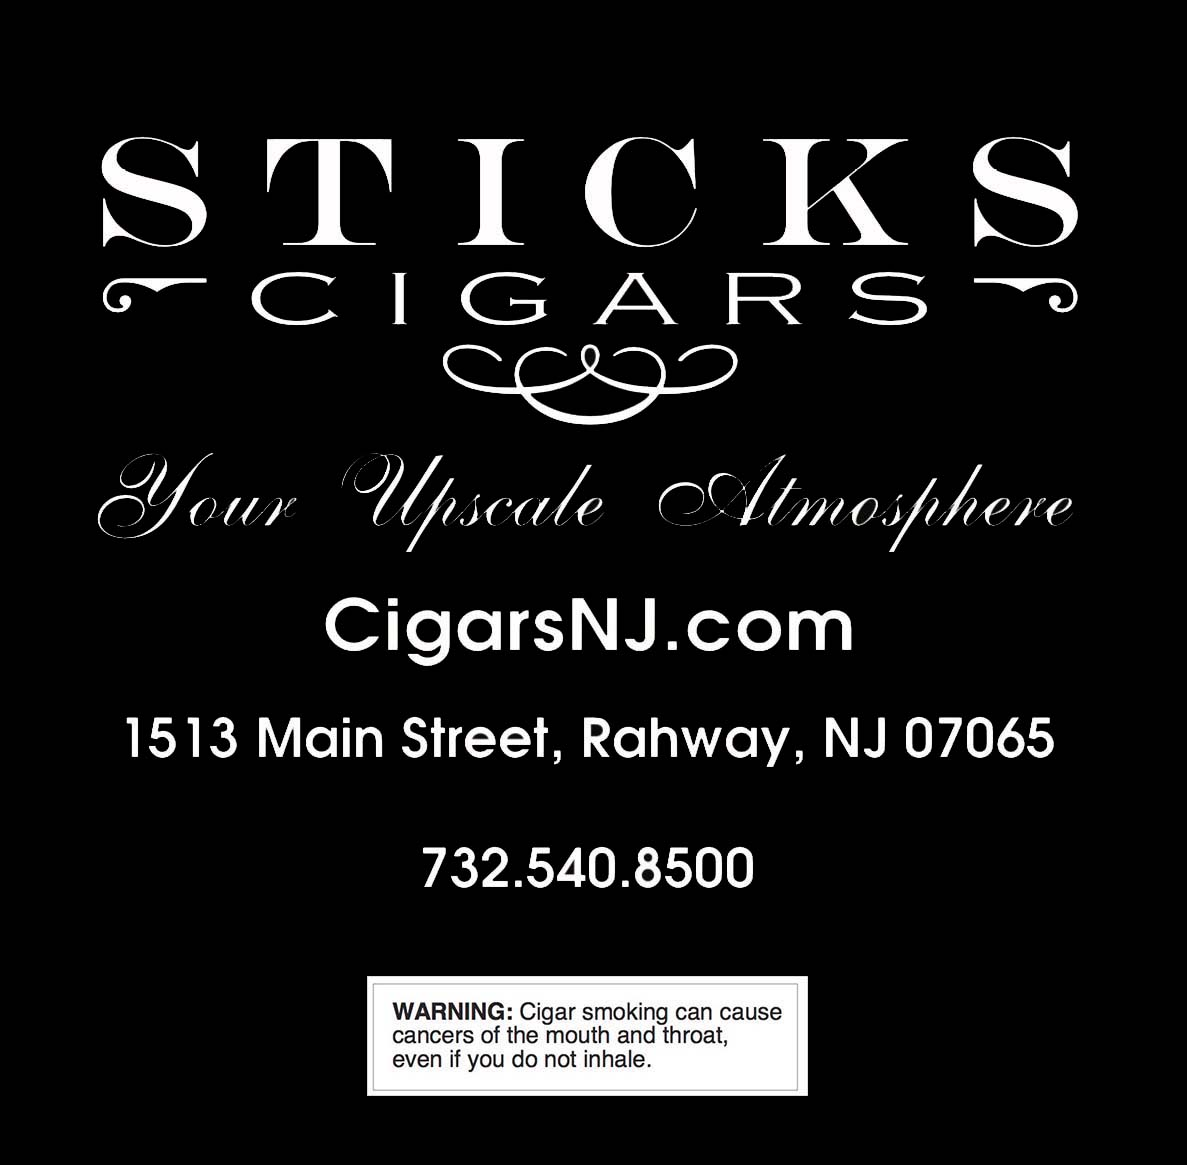 Sticks Cigars